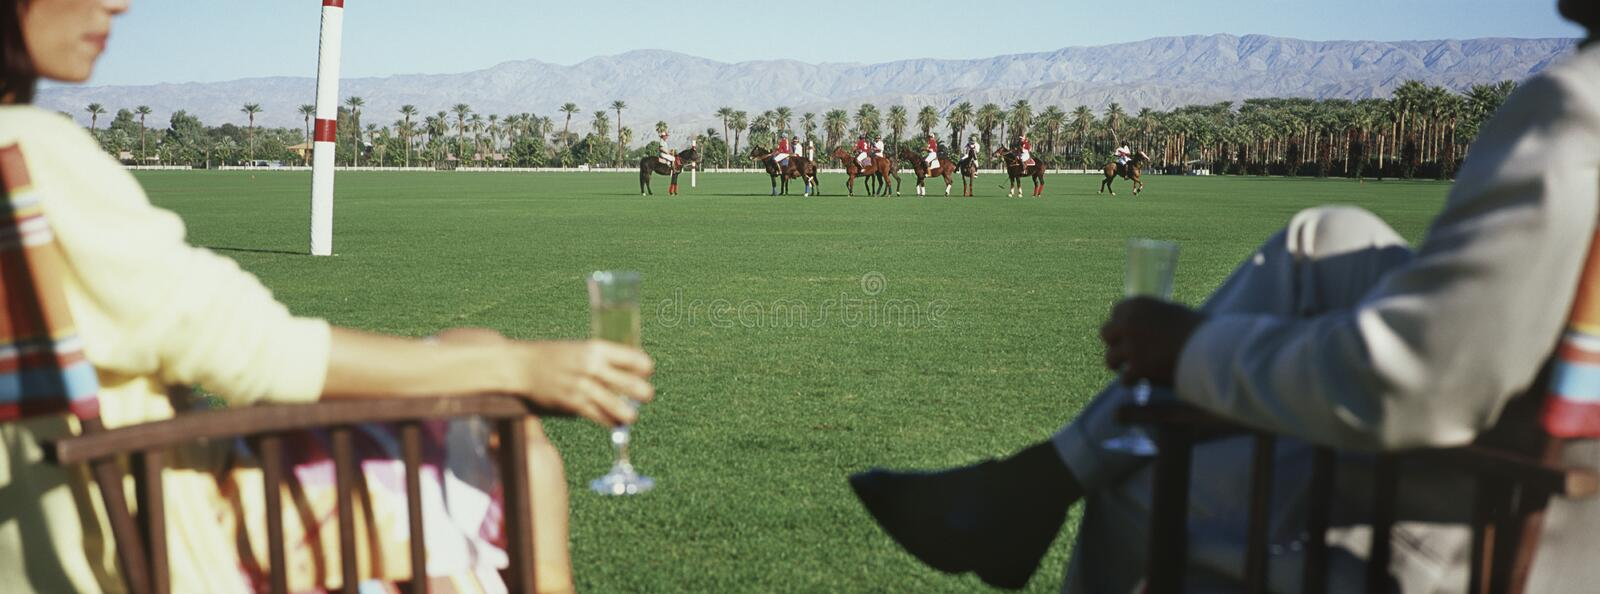 Couple Holding Champagne Flutes While Watching Polo Match. Midsection of couple holding champagne flutes while watching polo match royalty free stock photo